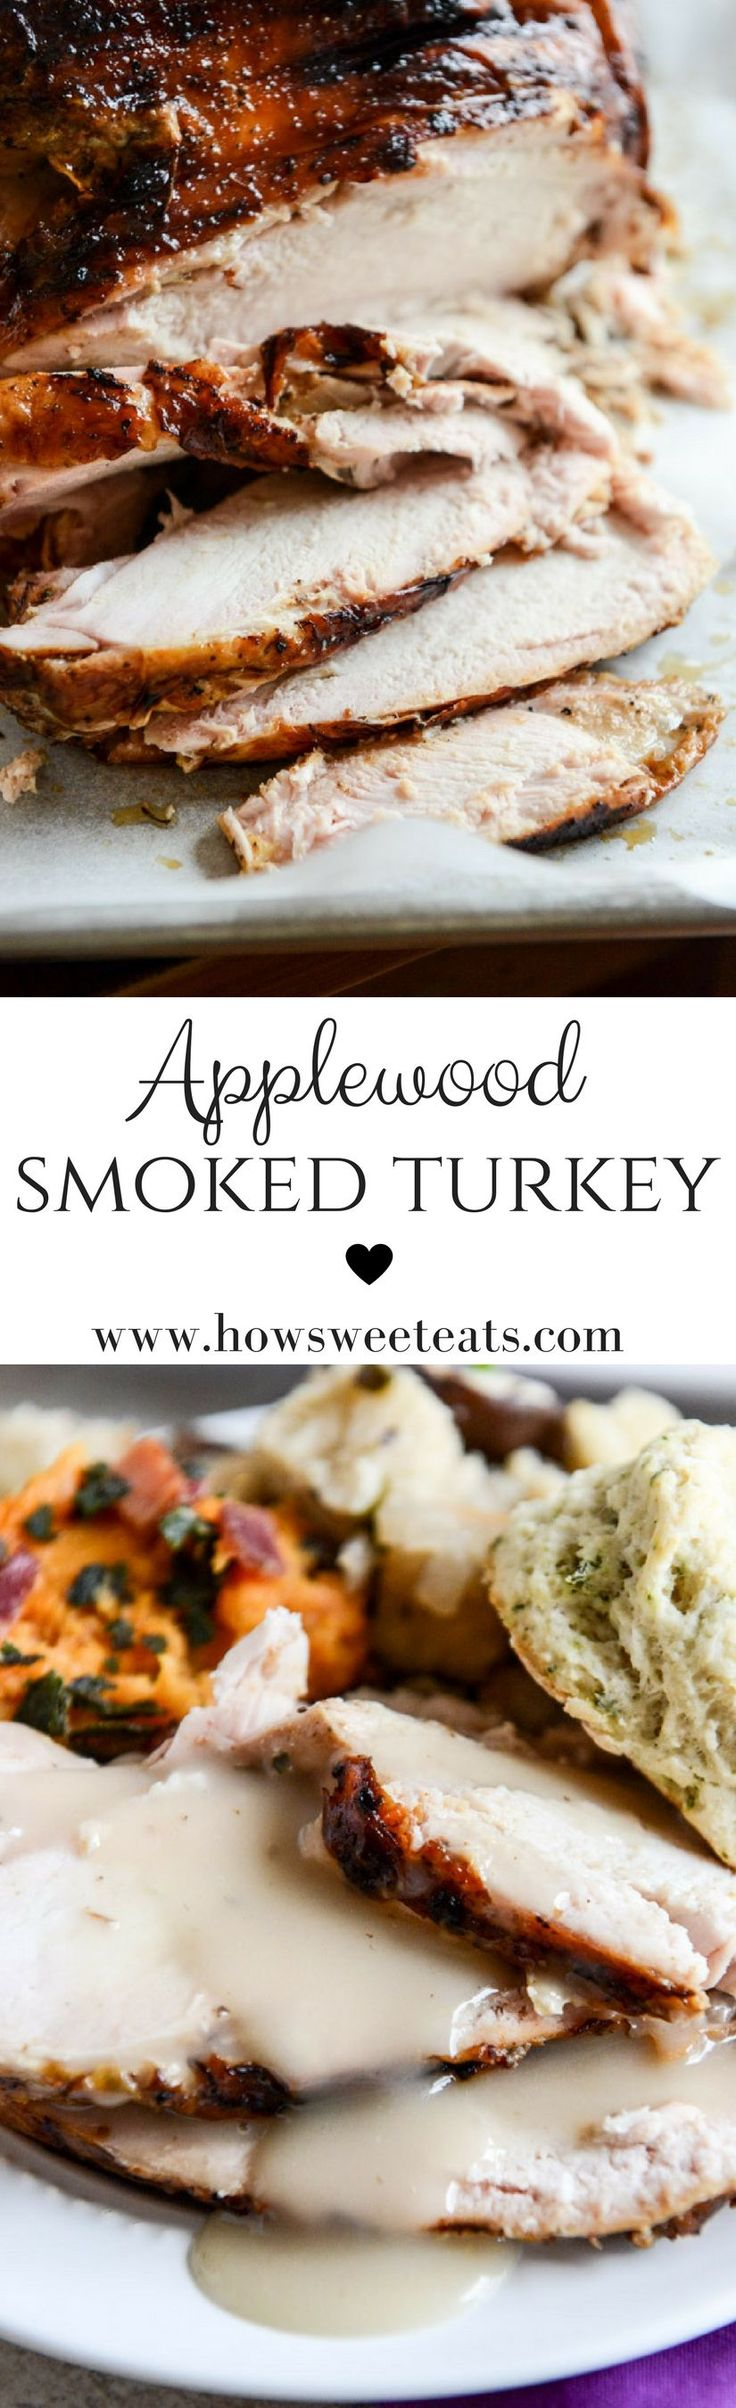 Applewood Smoked Turkey with Cider Bourbon Gravy I howsweeteats.com @howsweeteats